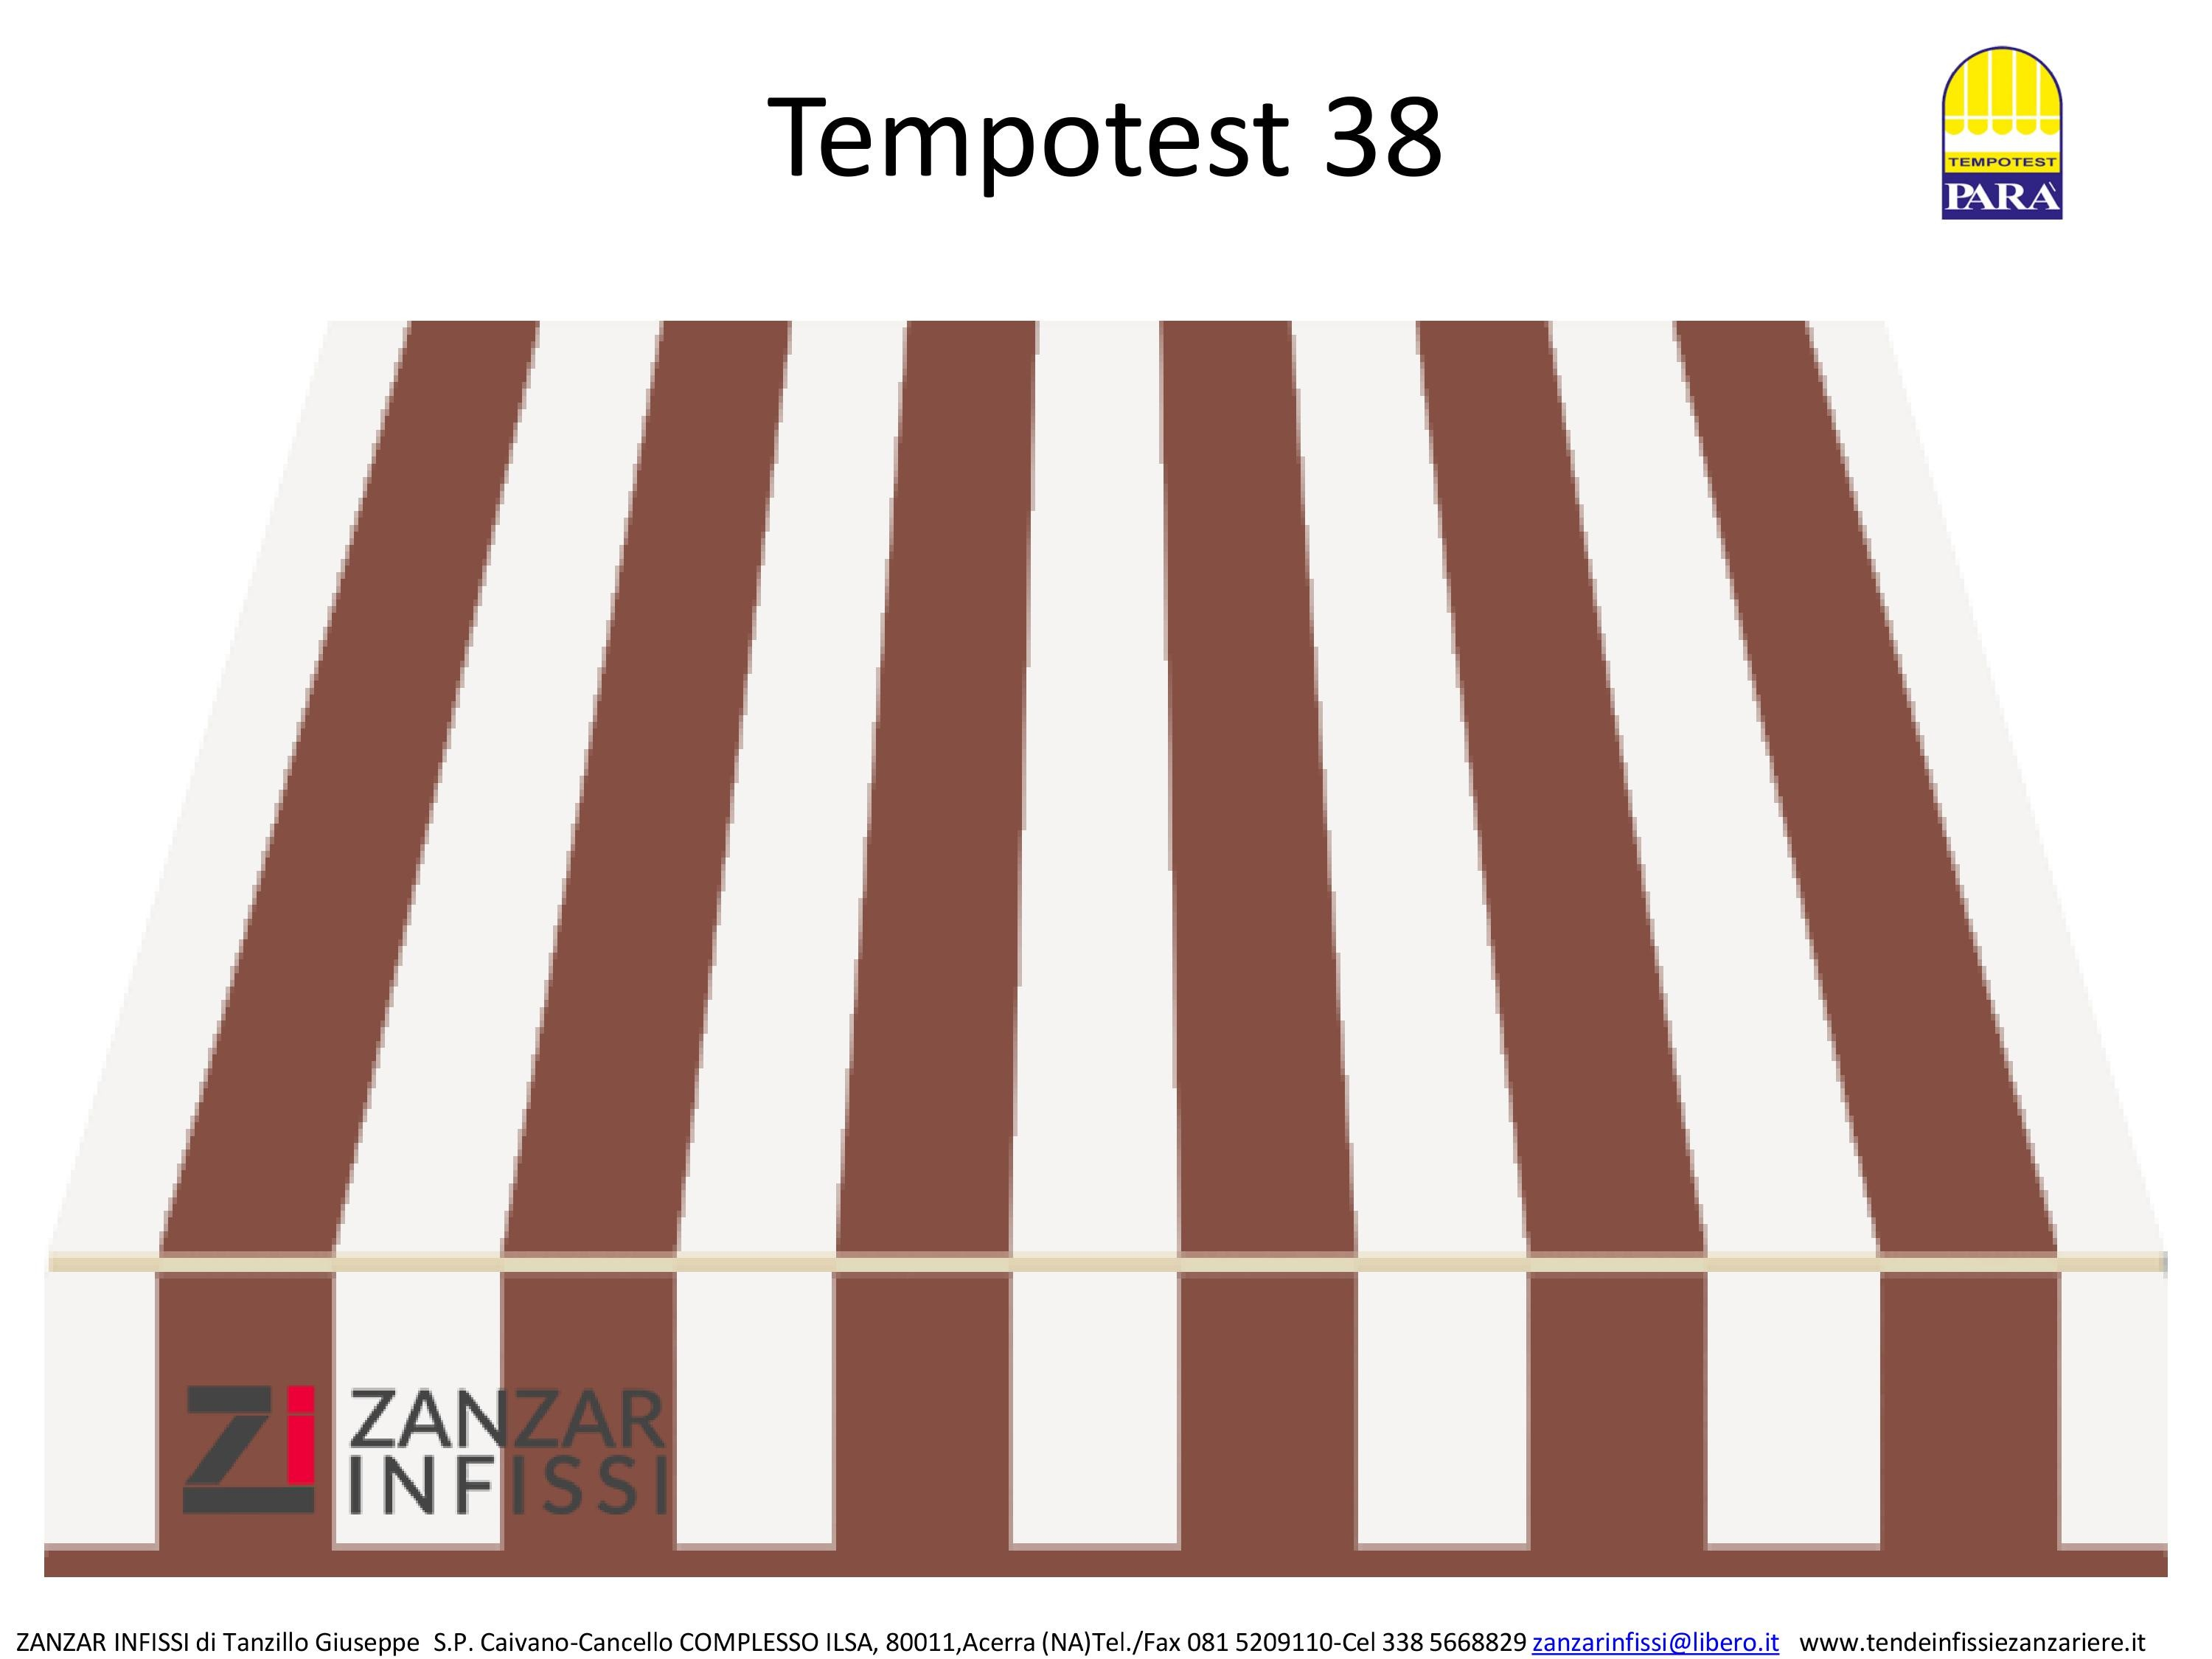 Tempotest 38